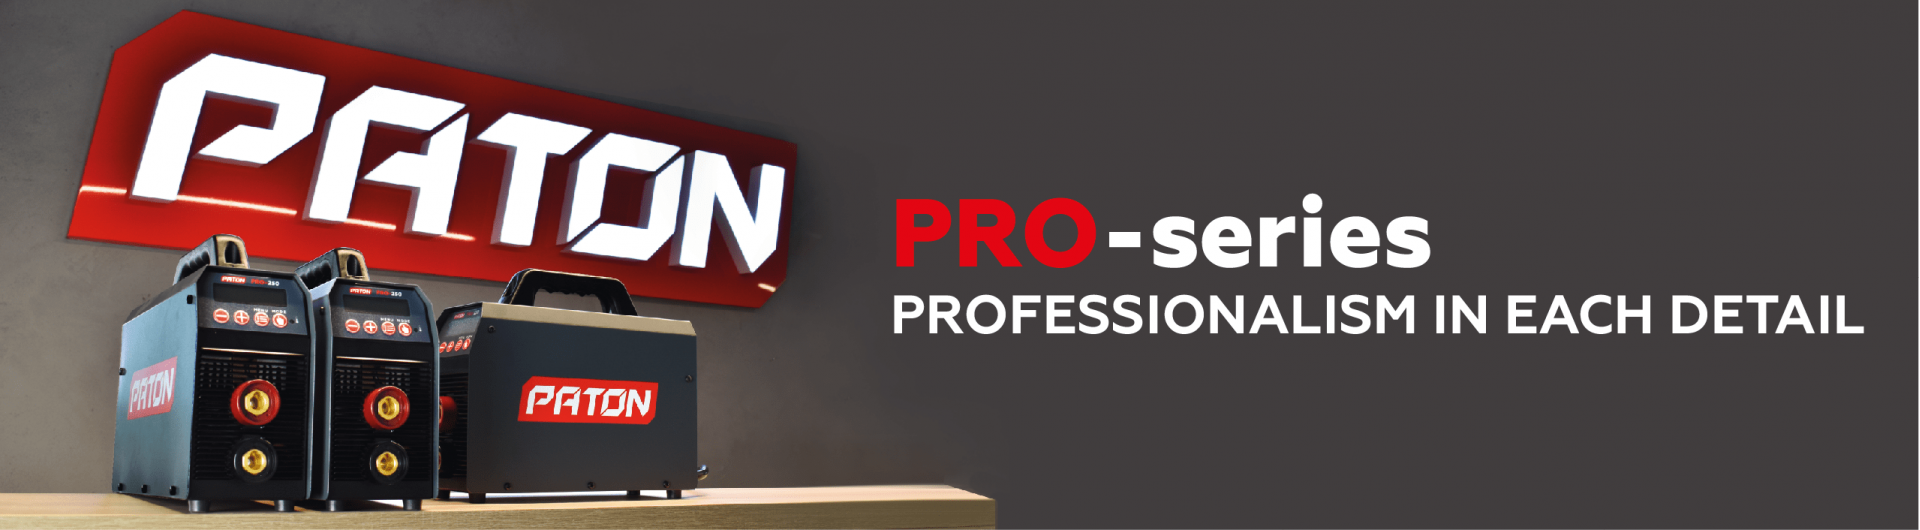 PRO-SERIES - PROFESSIONALISM IN EVERY DETAIL2